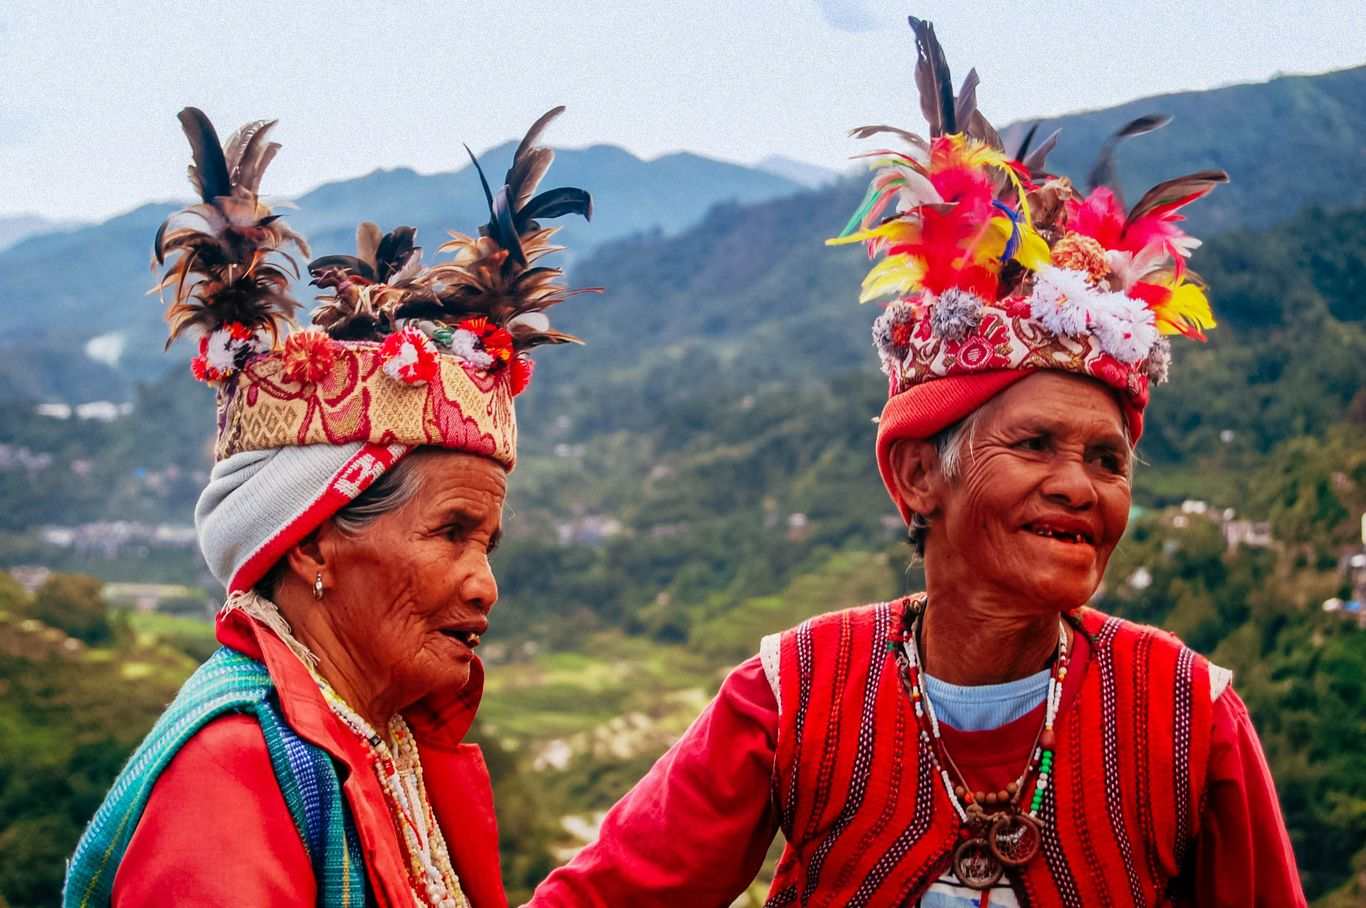 A couple attired in their colorful tribal gear and clothing, backdropped rice terraces carved on a mountainous valley